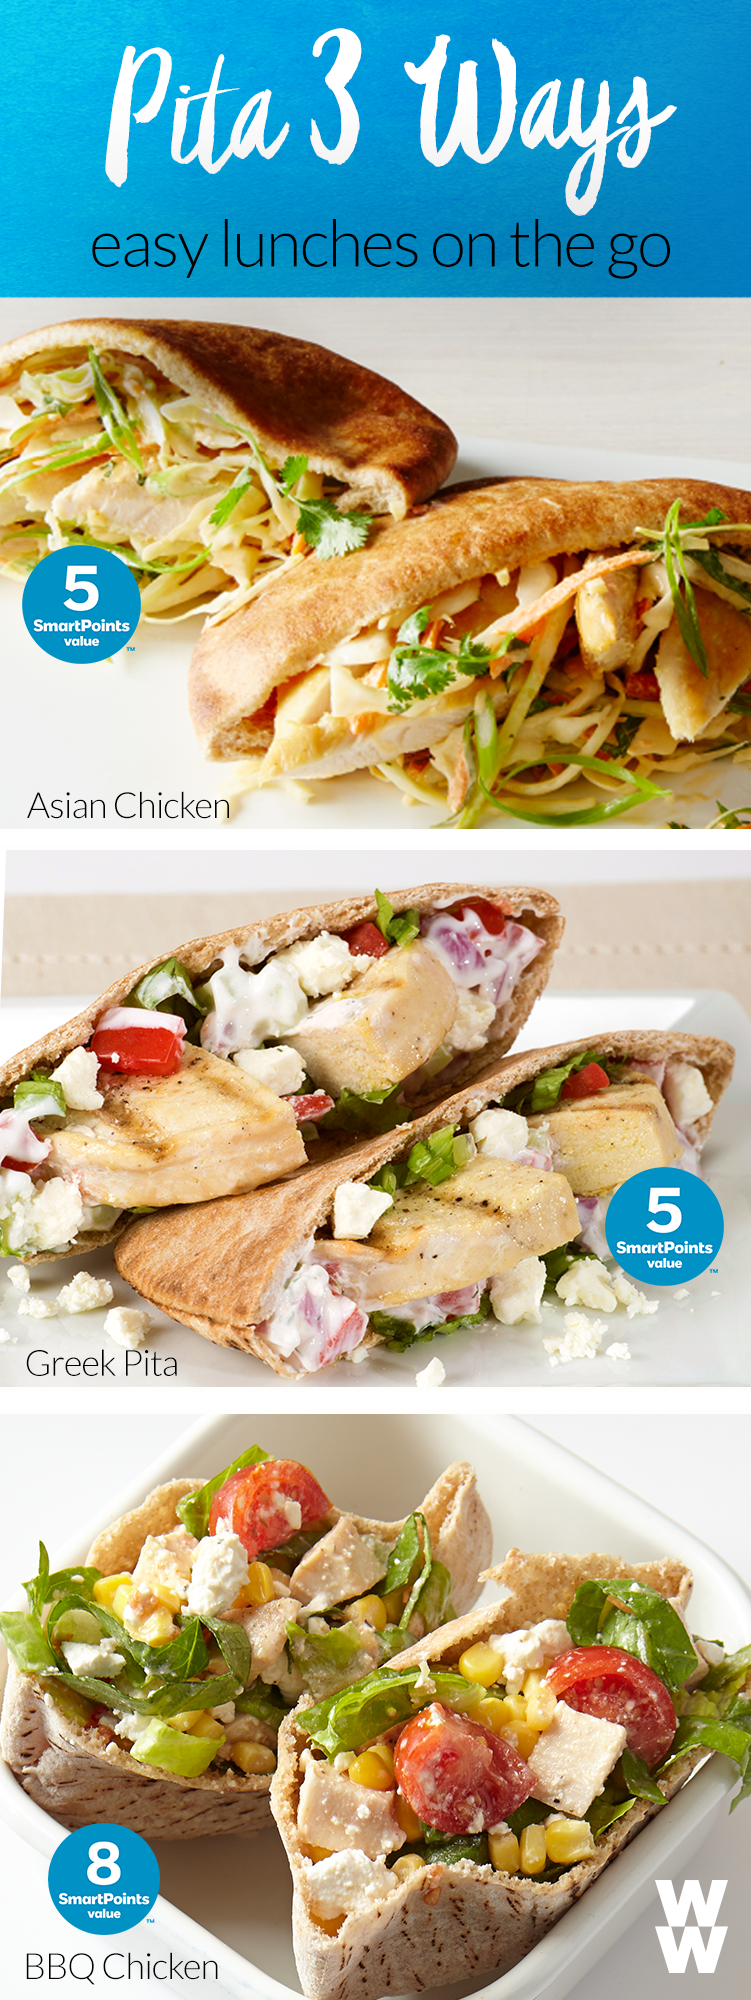 One Ingredient 3 Different Tasty Recipes Switch Up Your